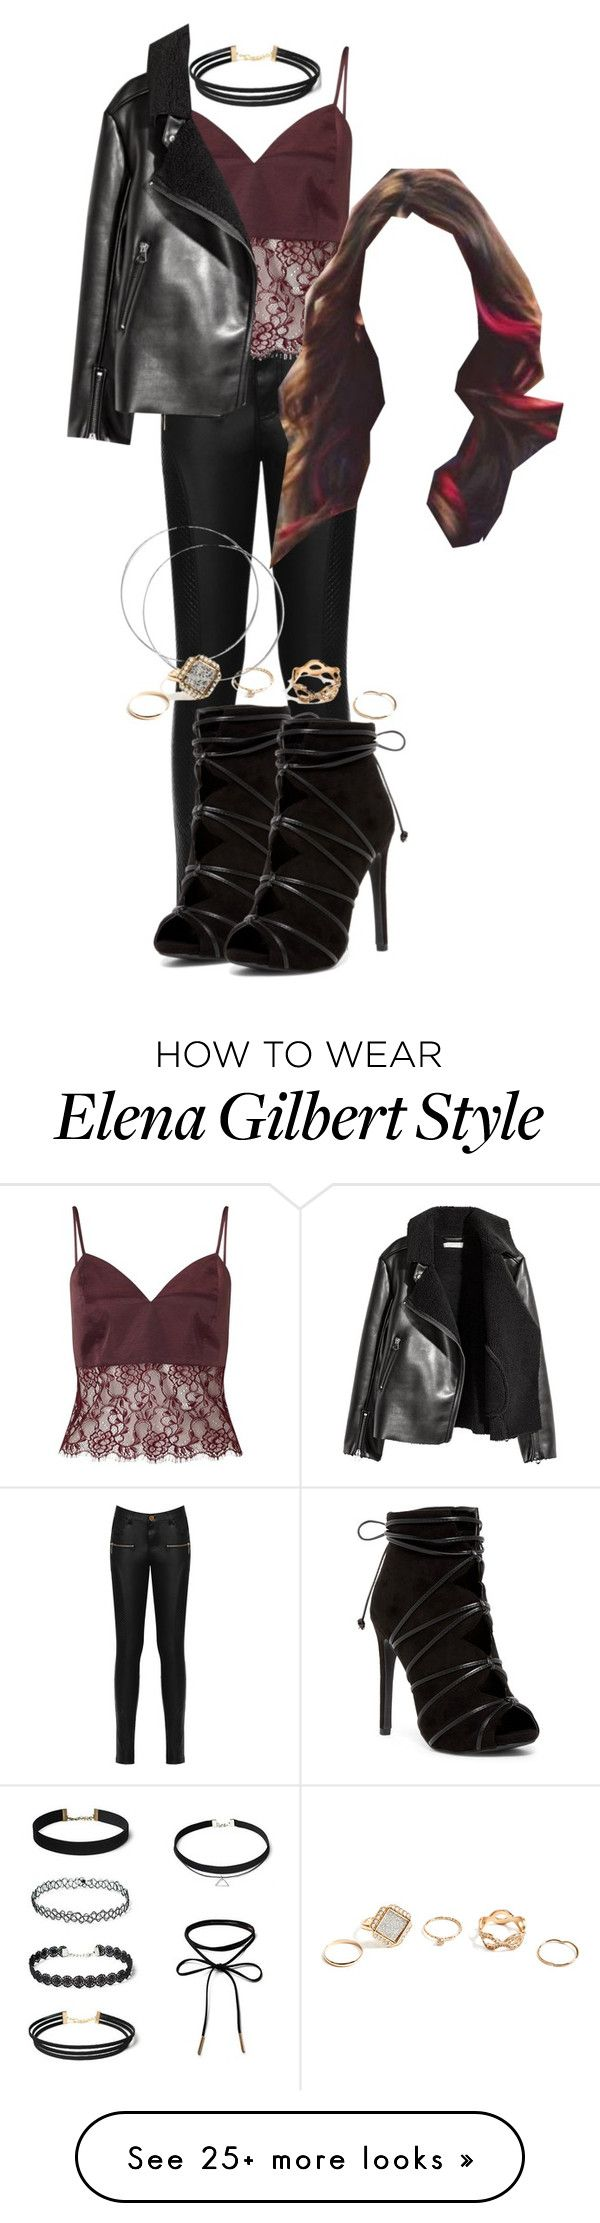 """""""Elena/Katherine Inspired Outfit"""" by grandmasfood on Polyvore featuring WearAll, Miss Selfridge, H&M and GUESS"""